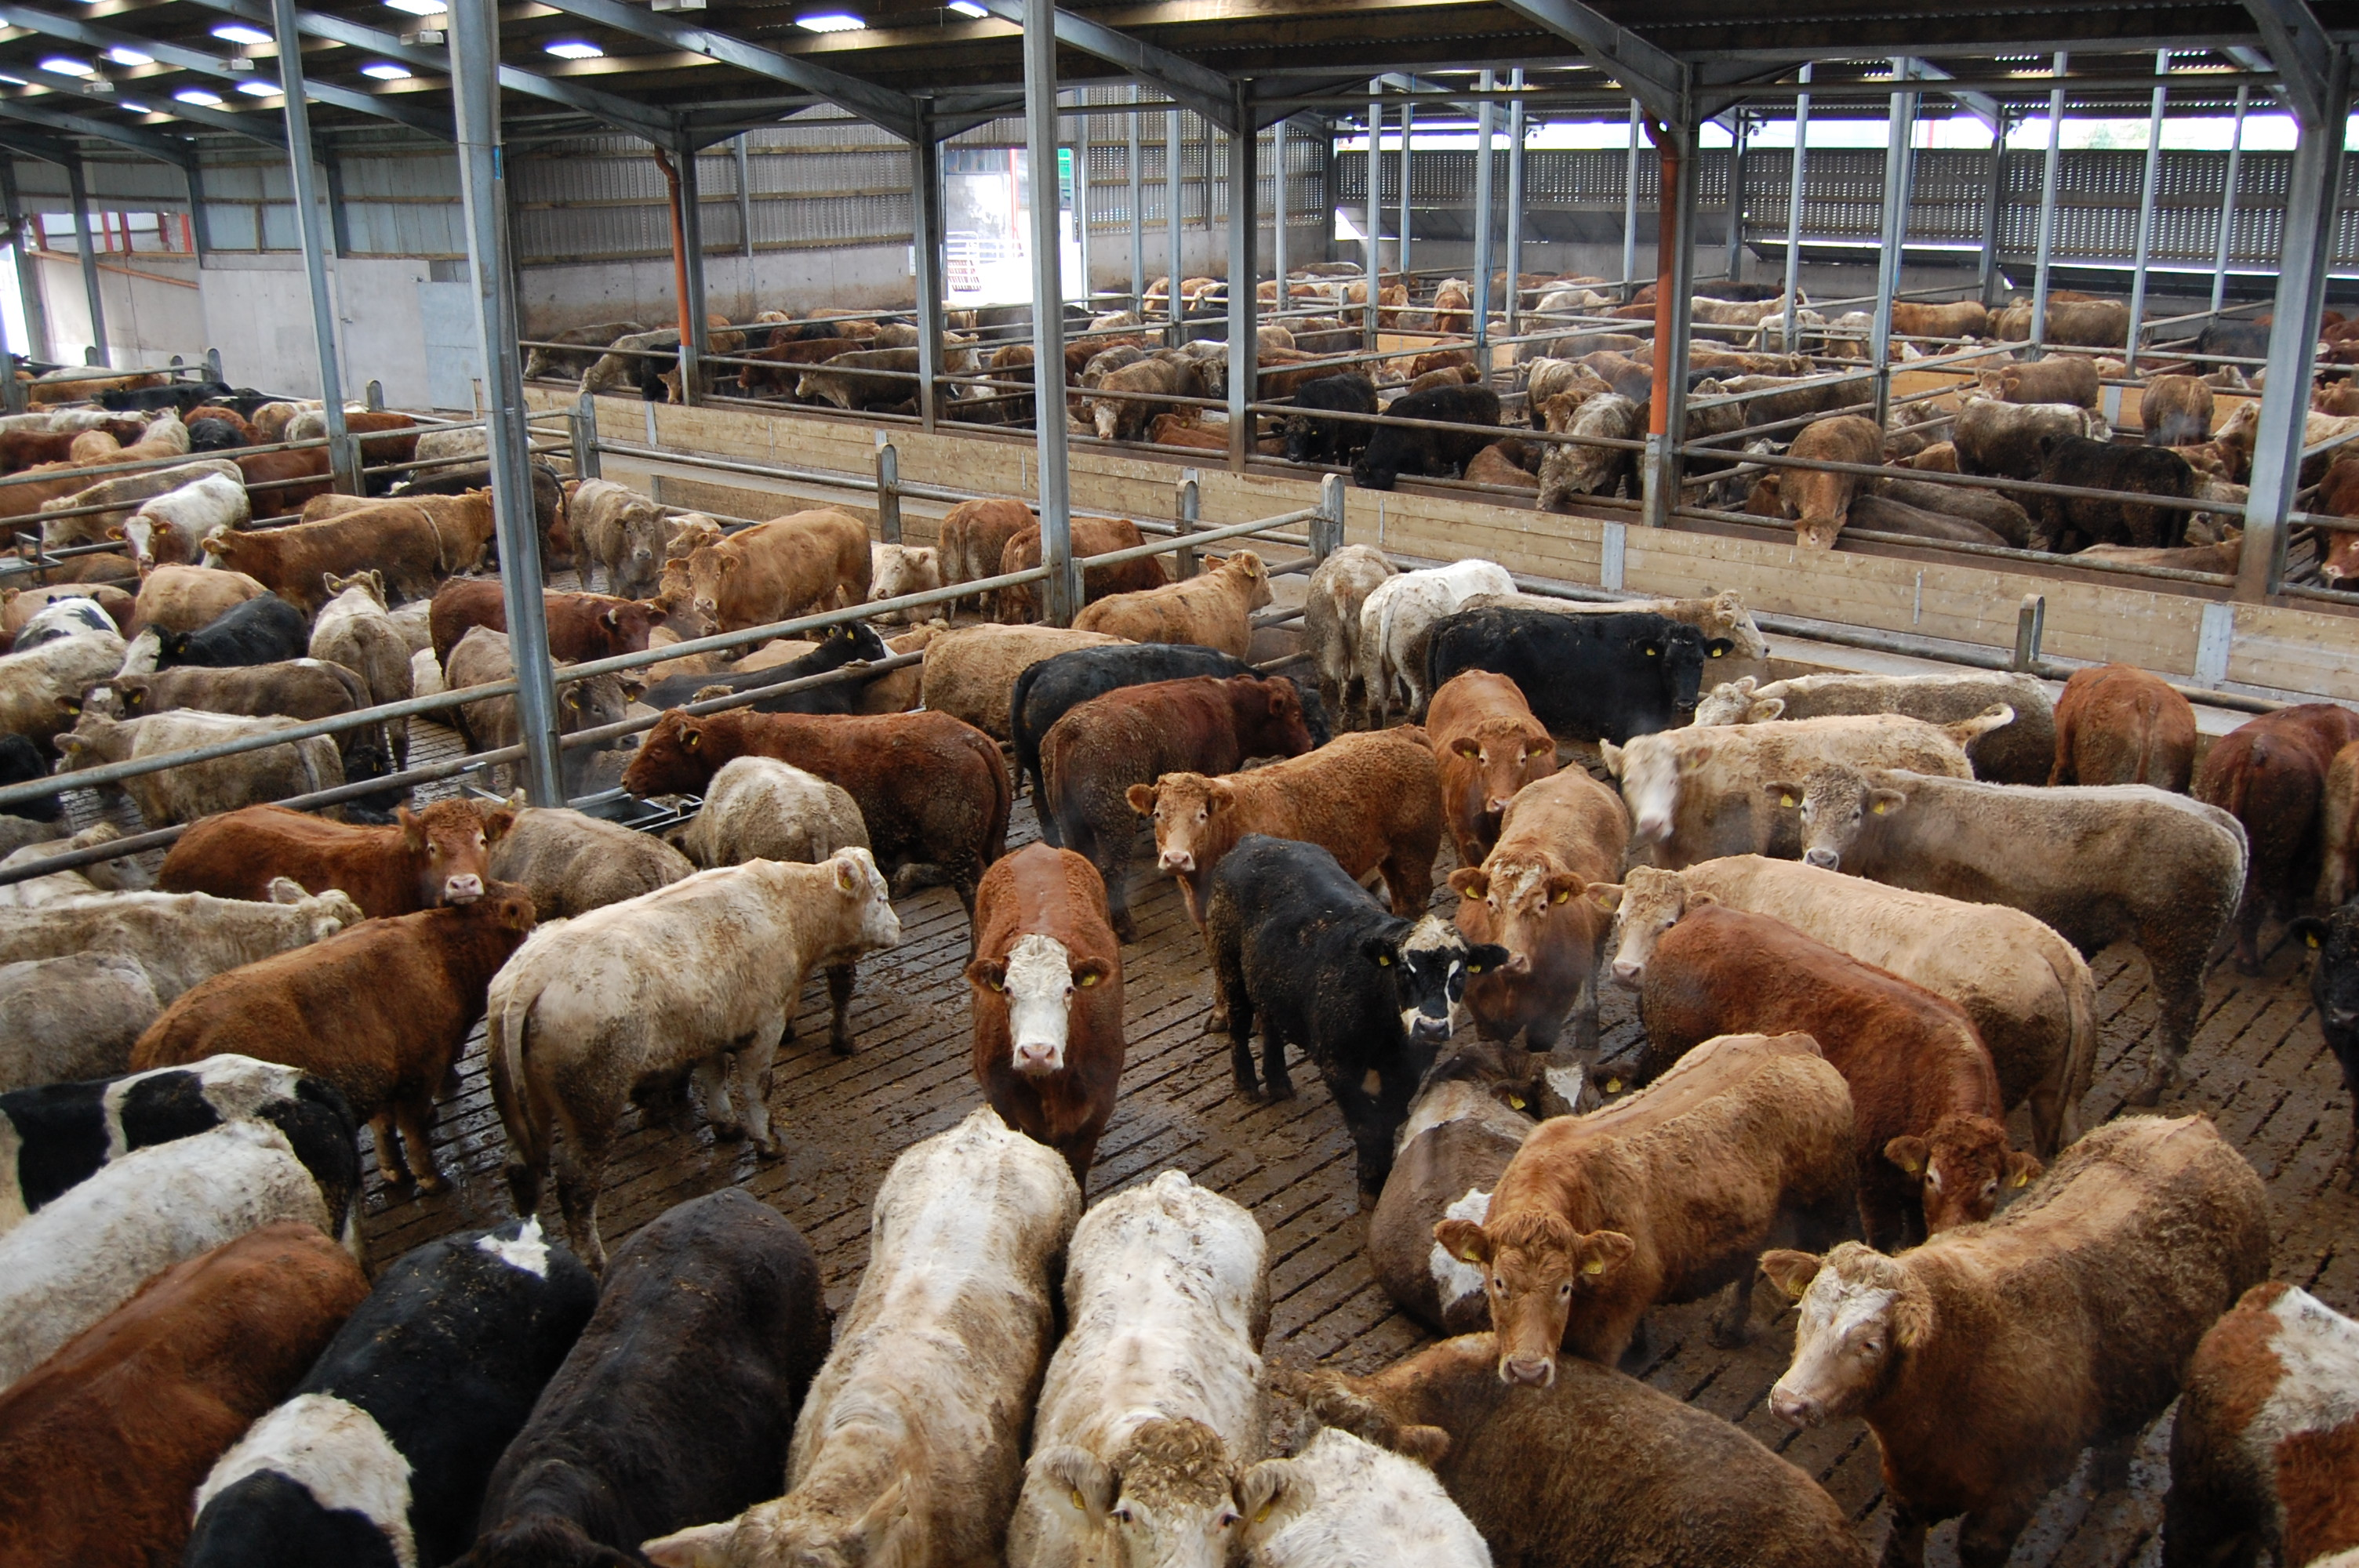 5 Key Areas To Improve Cattle Cleanliness